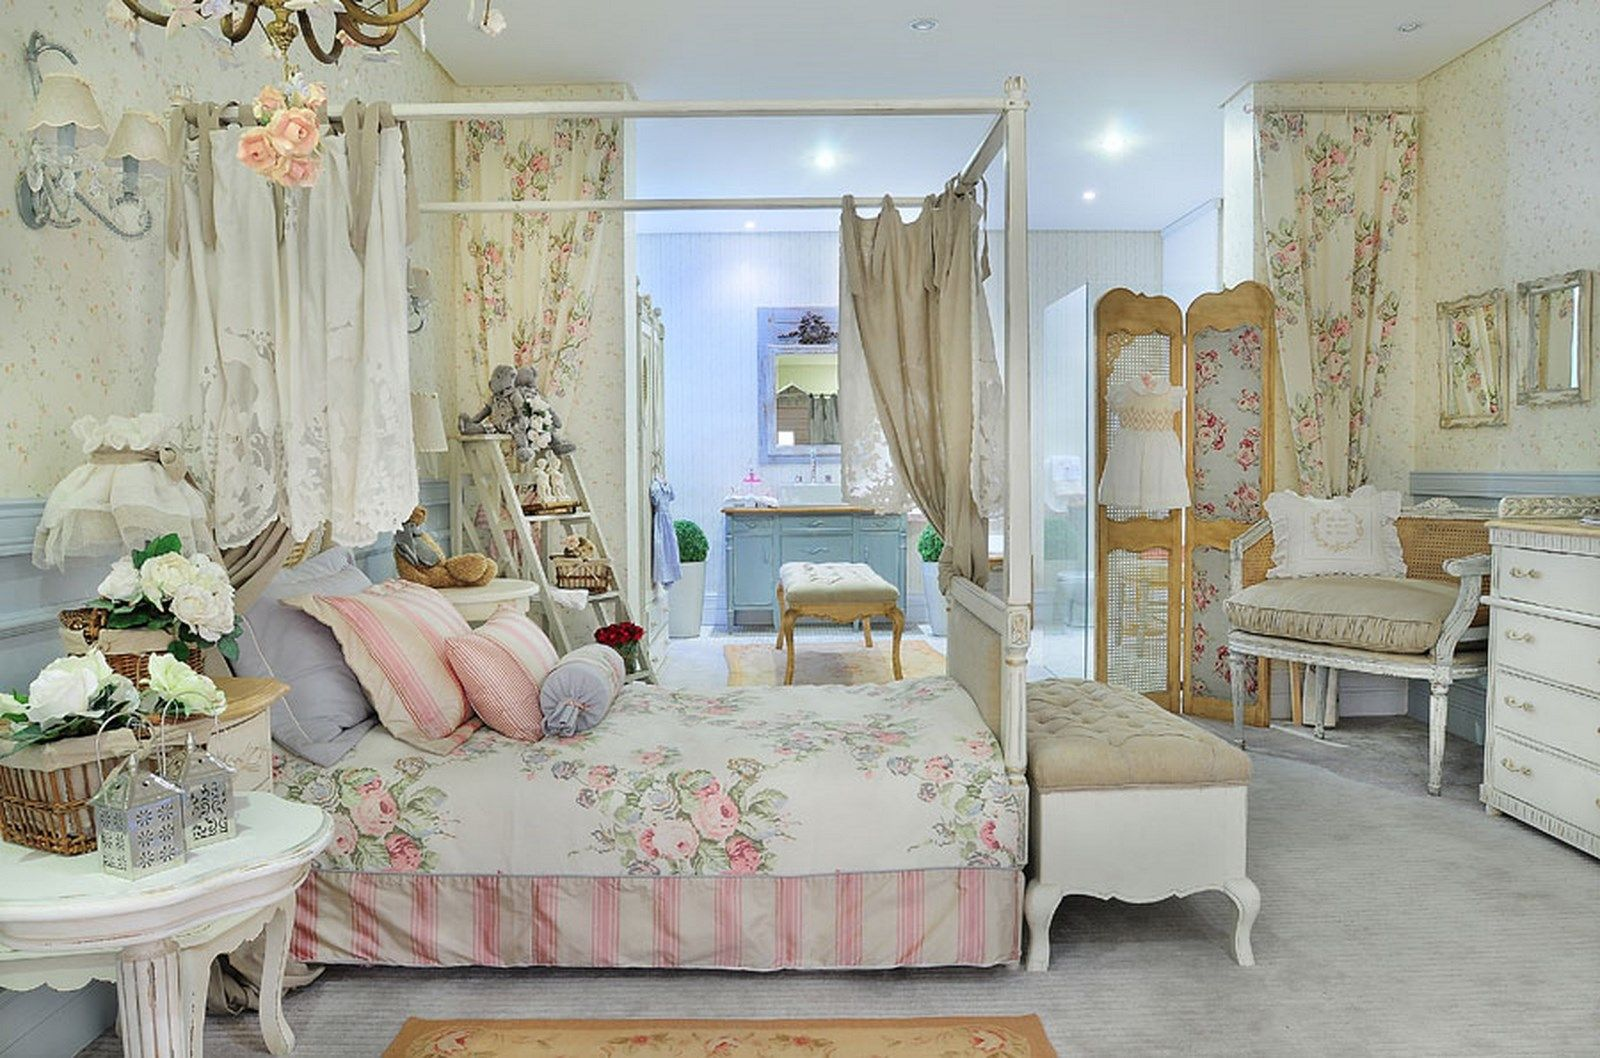 French Themed Girlsu0027 Bedroom | Charming French Inspired Bedroom For Girls  (Copy)